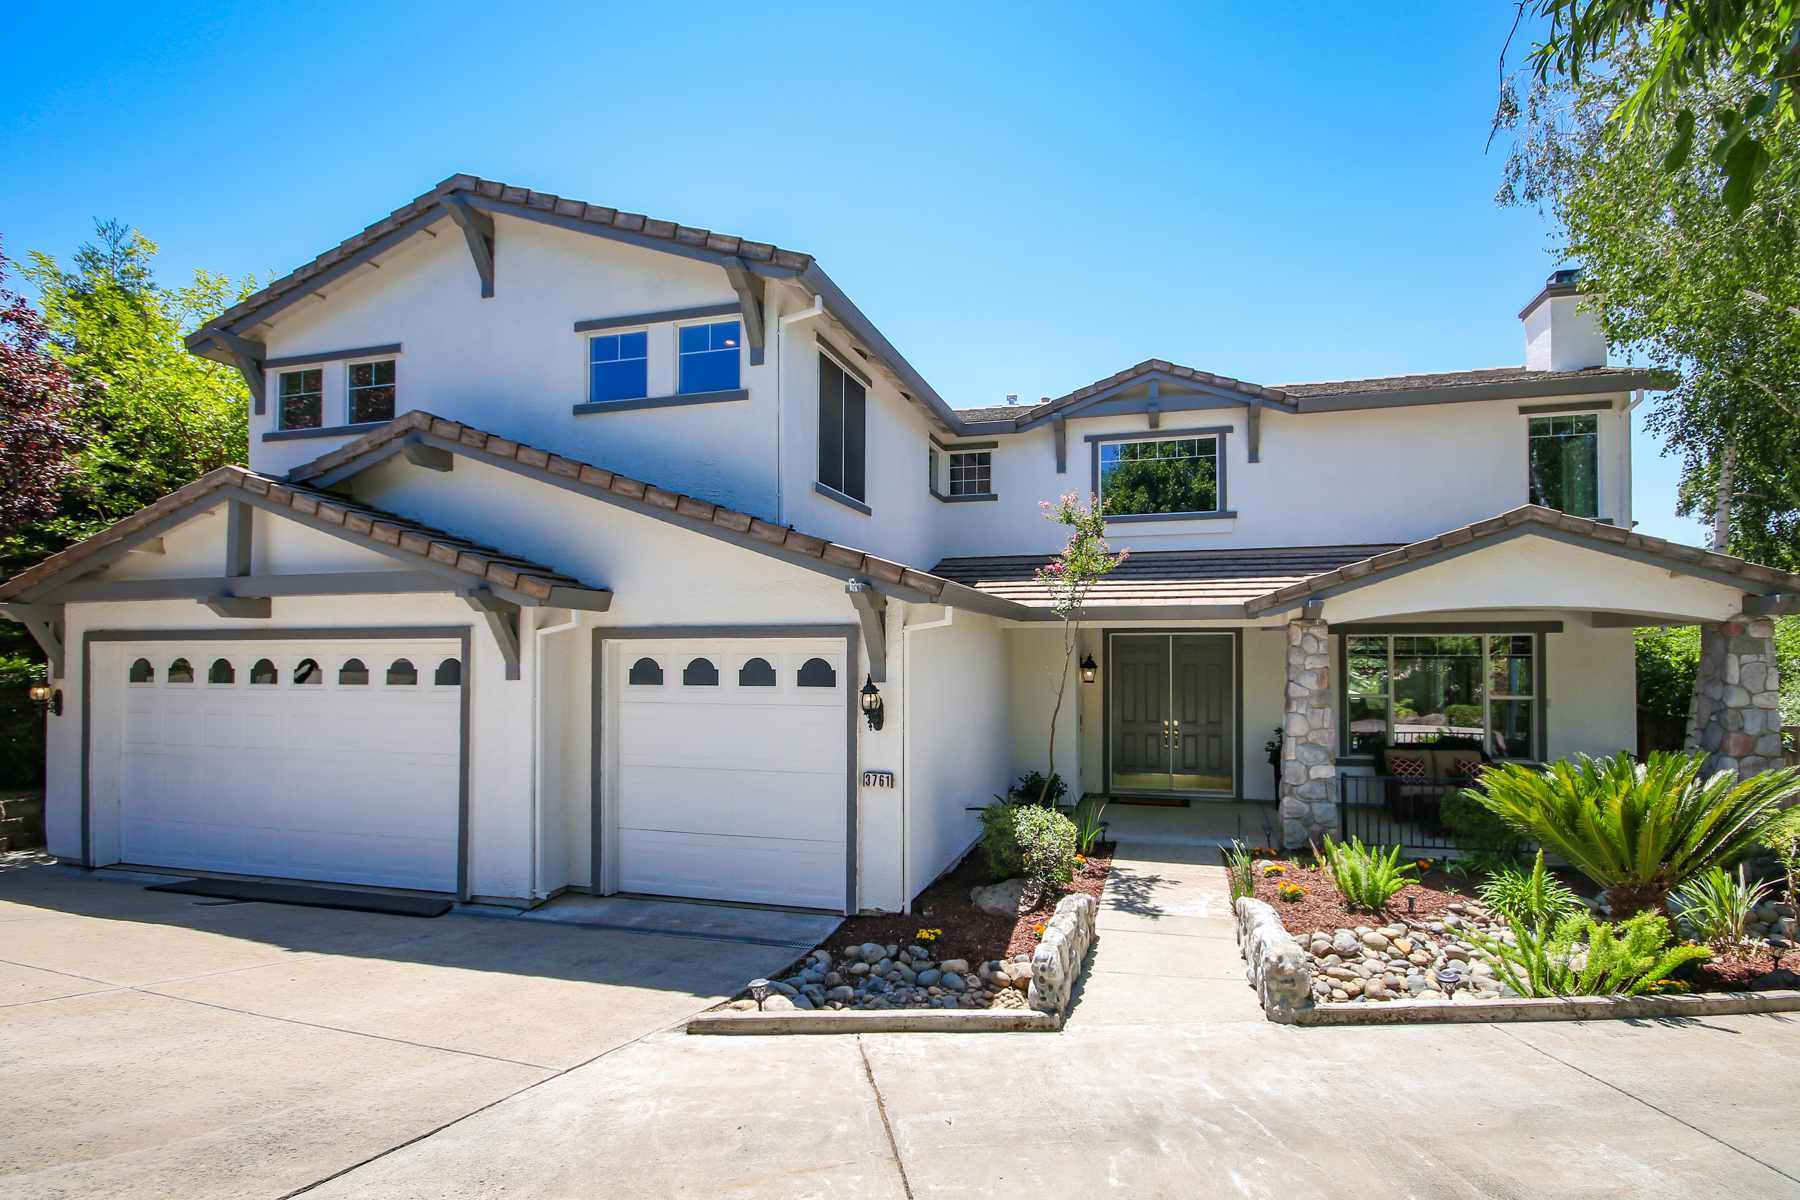 Single Family Homes for Sale at 3761 Jennieke Ct,, Rocklin, CA 95765 3761 Jennieke Ct. Rocklin, California 95765 United States